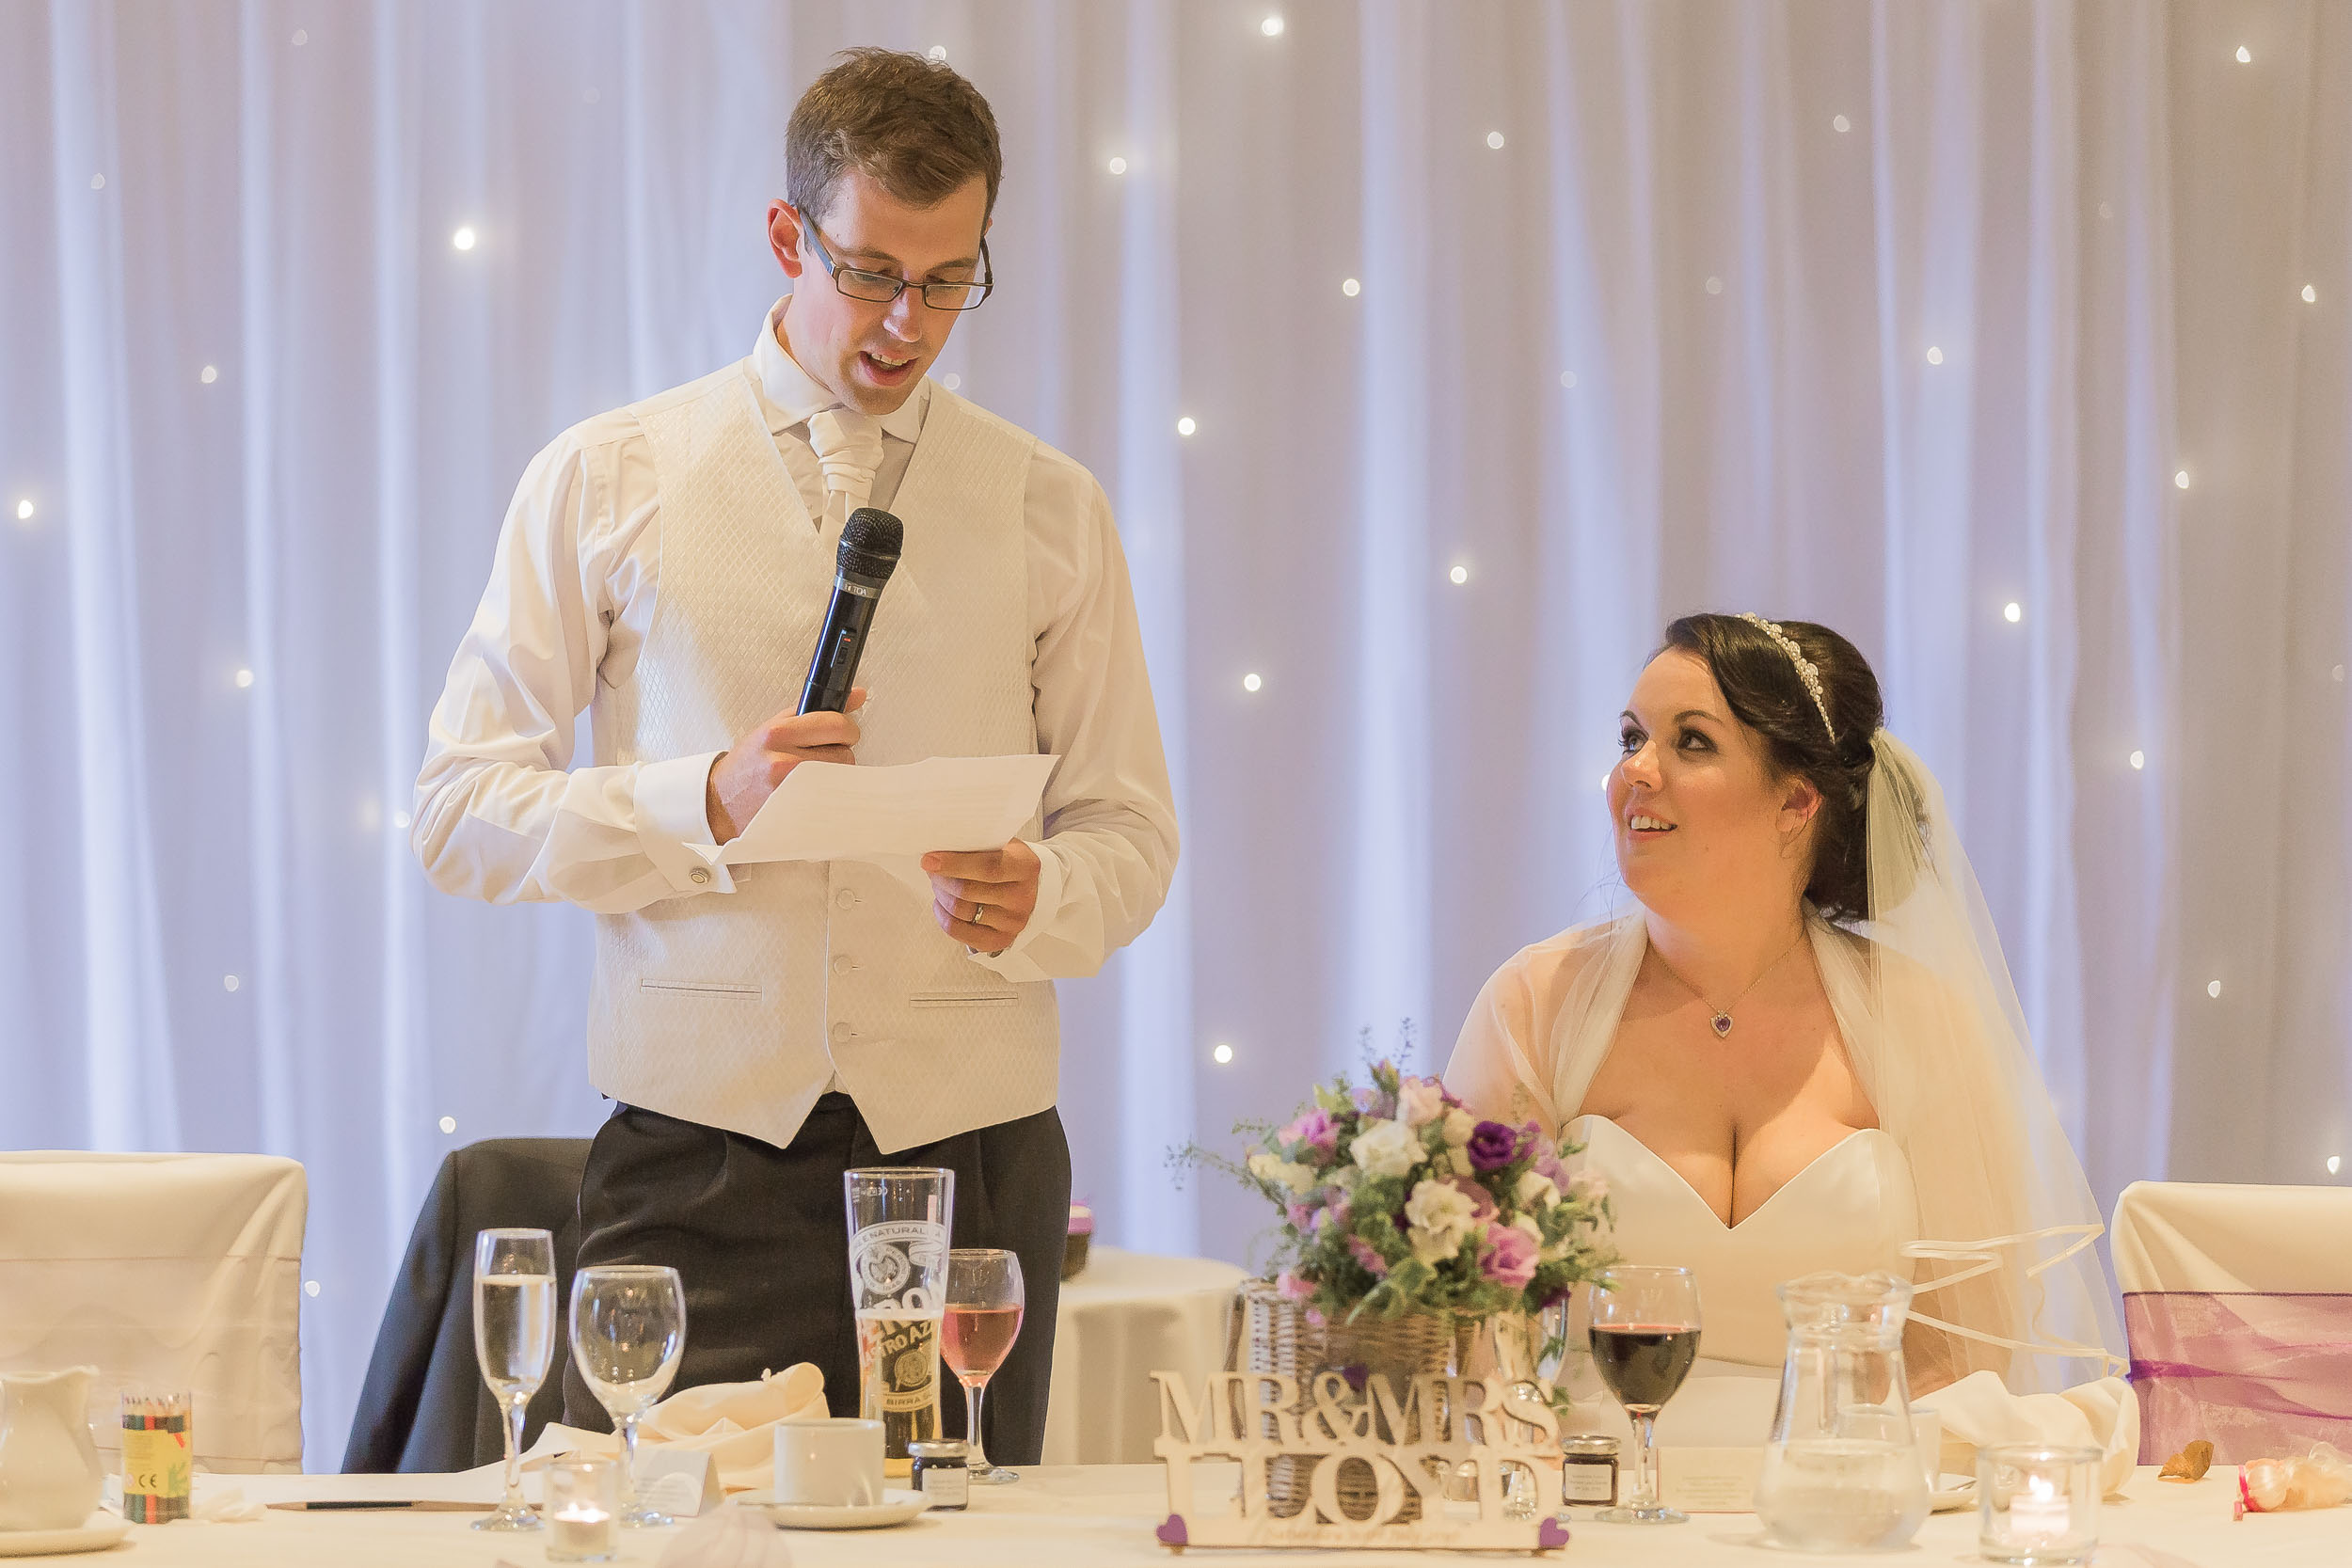 Nicola & Matt-Wedding-Coniston Cold Hotel-Yorkshire-photo-0445.jpg